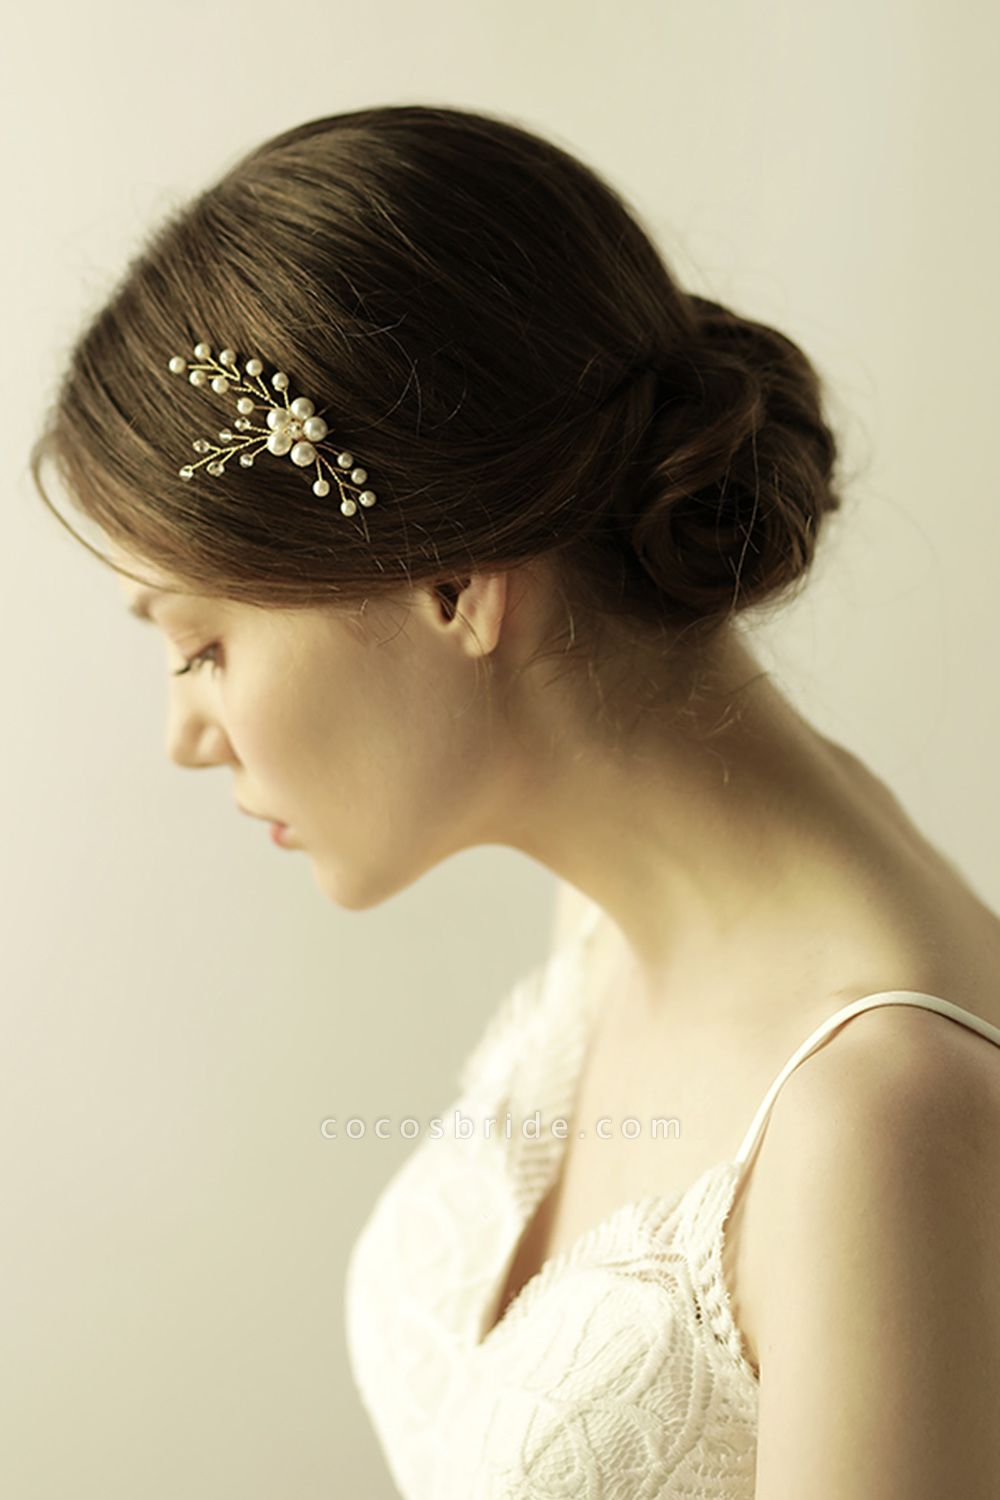 Cute Alloy Daily Wear Hairpins Headpiece with Imitation Pearls